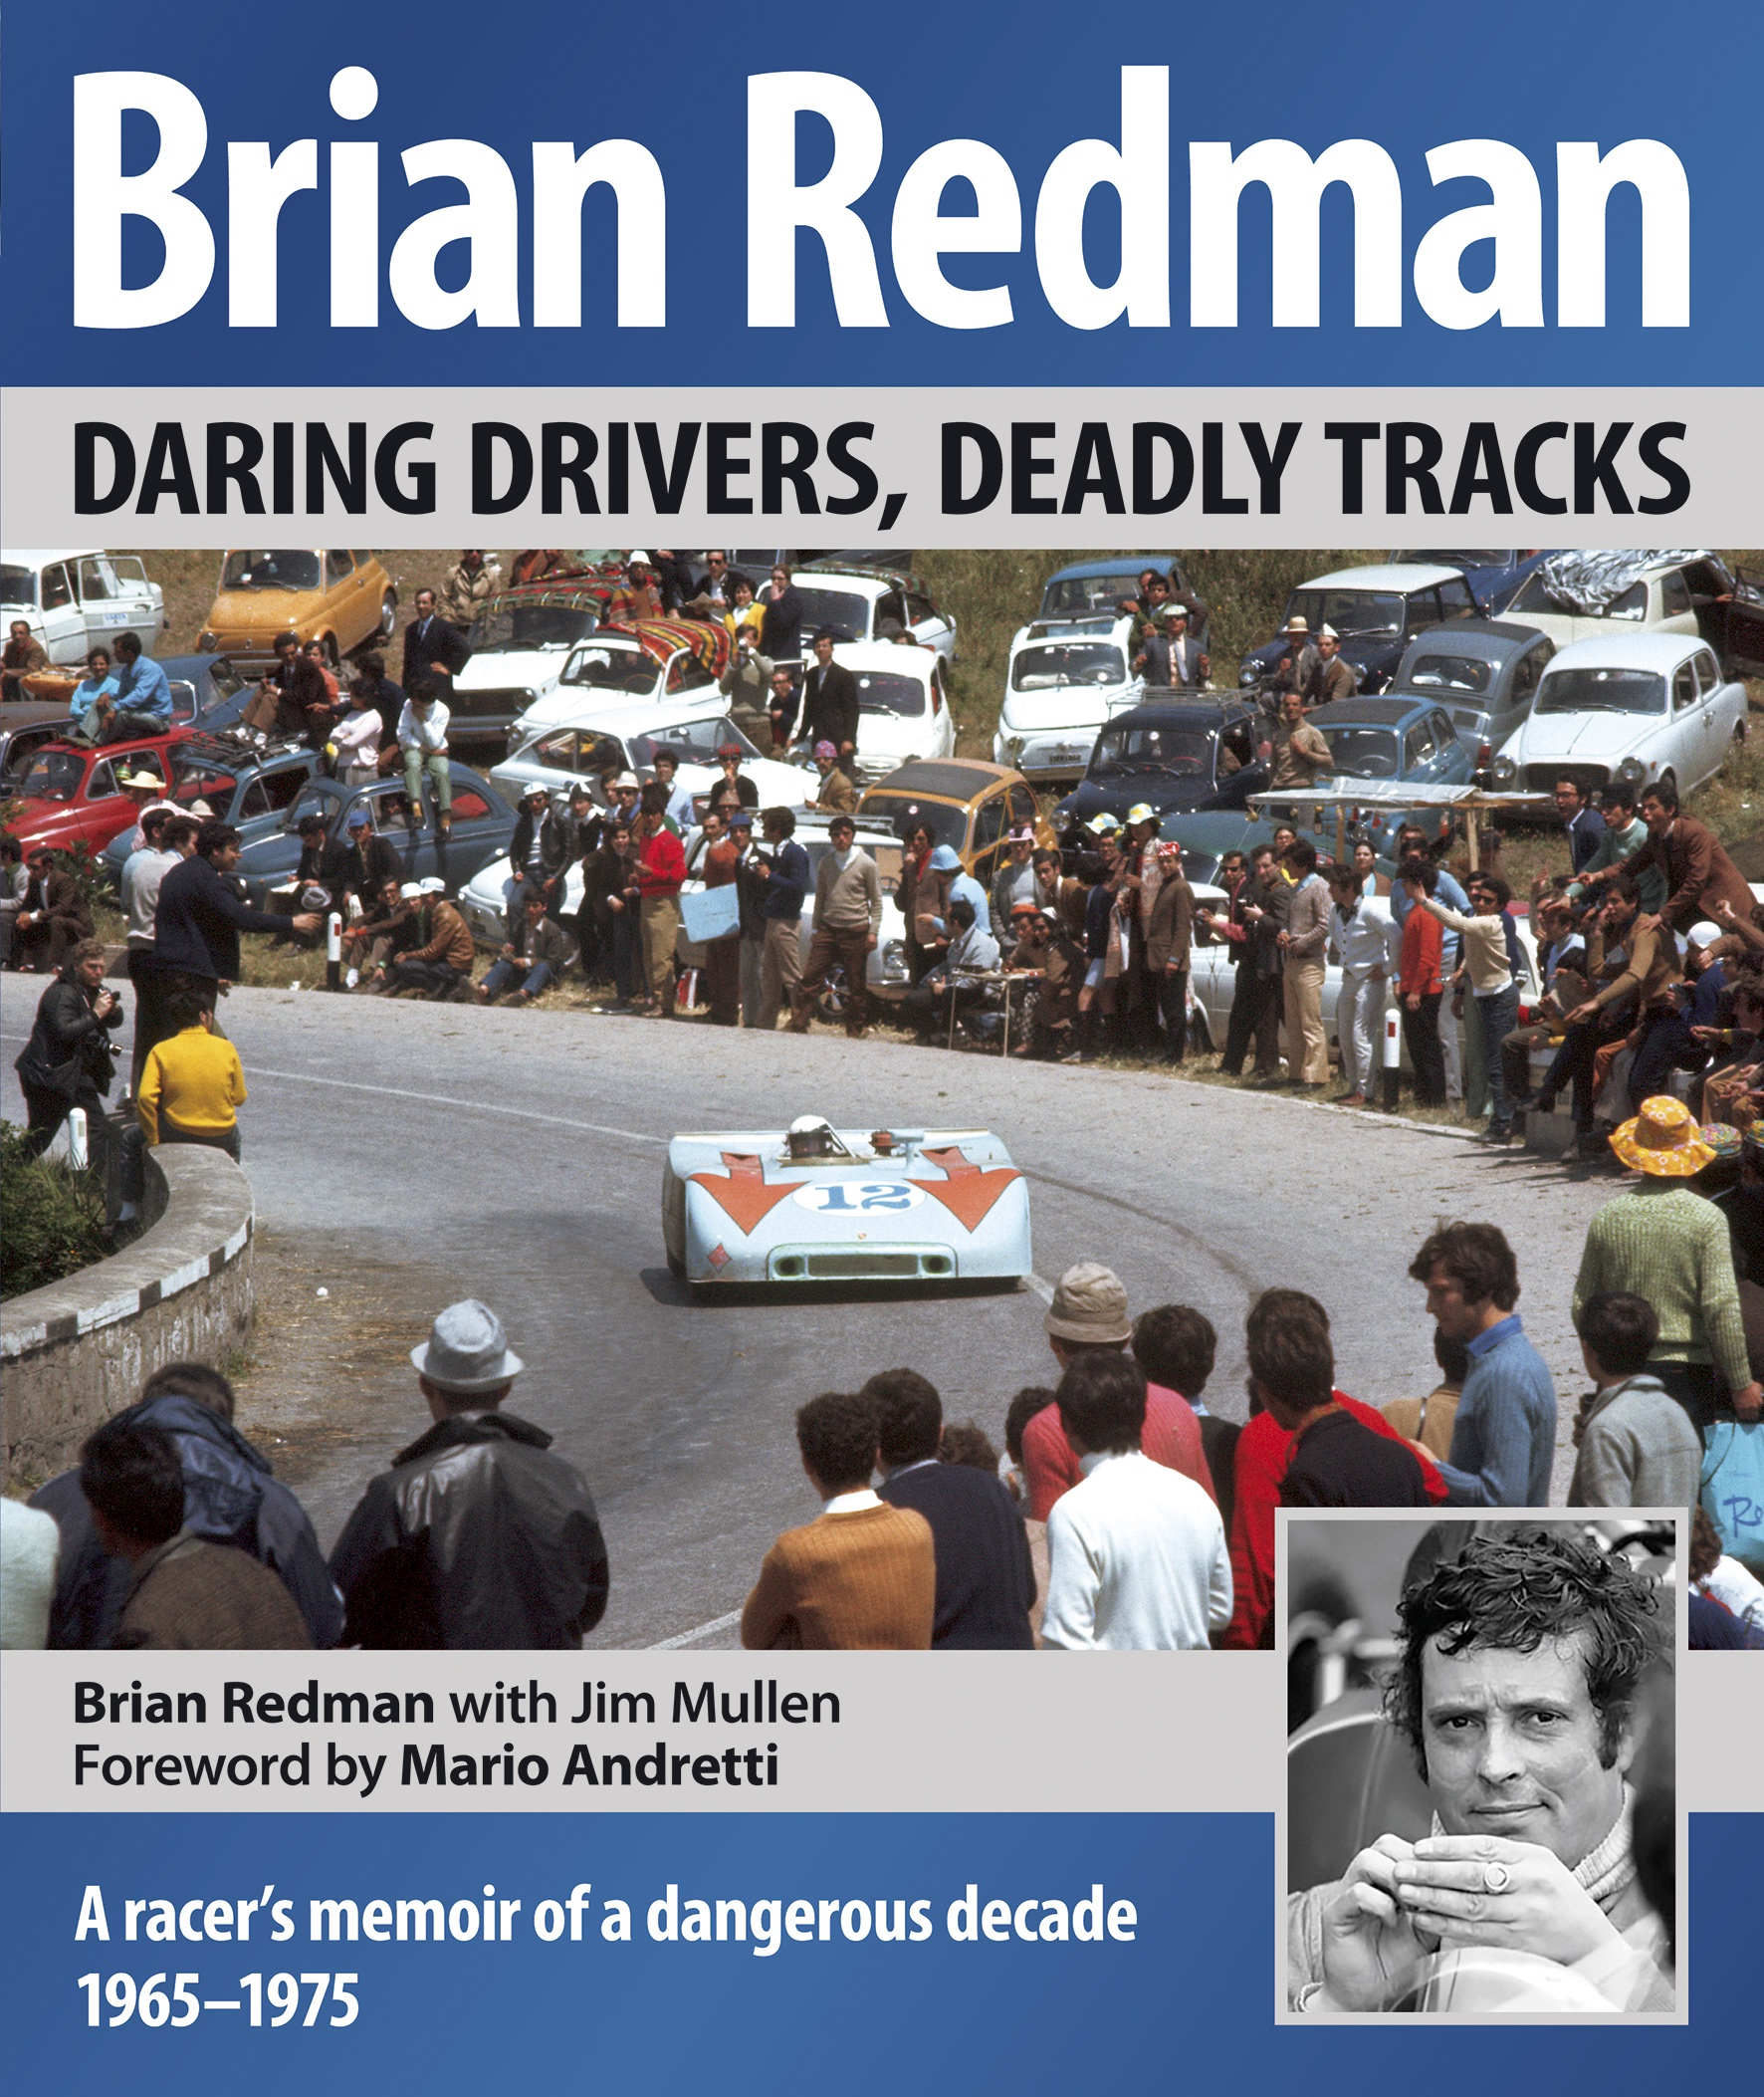 Brian Redman's Daring Drivers, Deadly Tracks